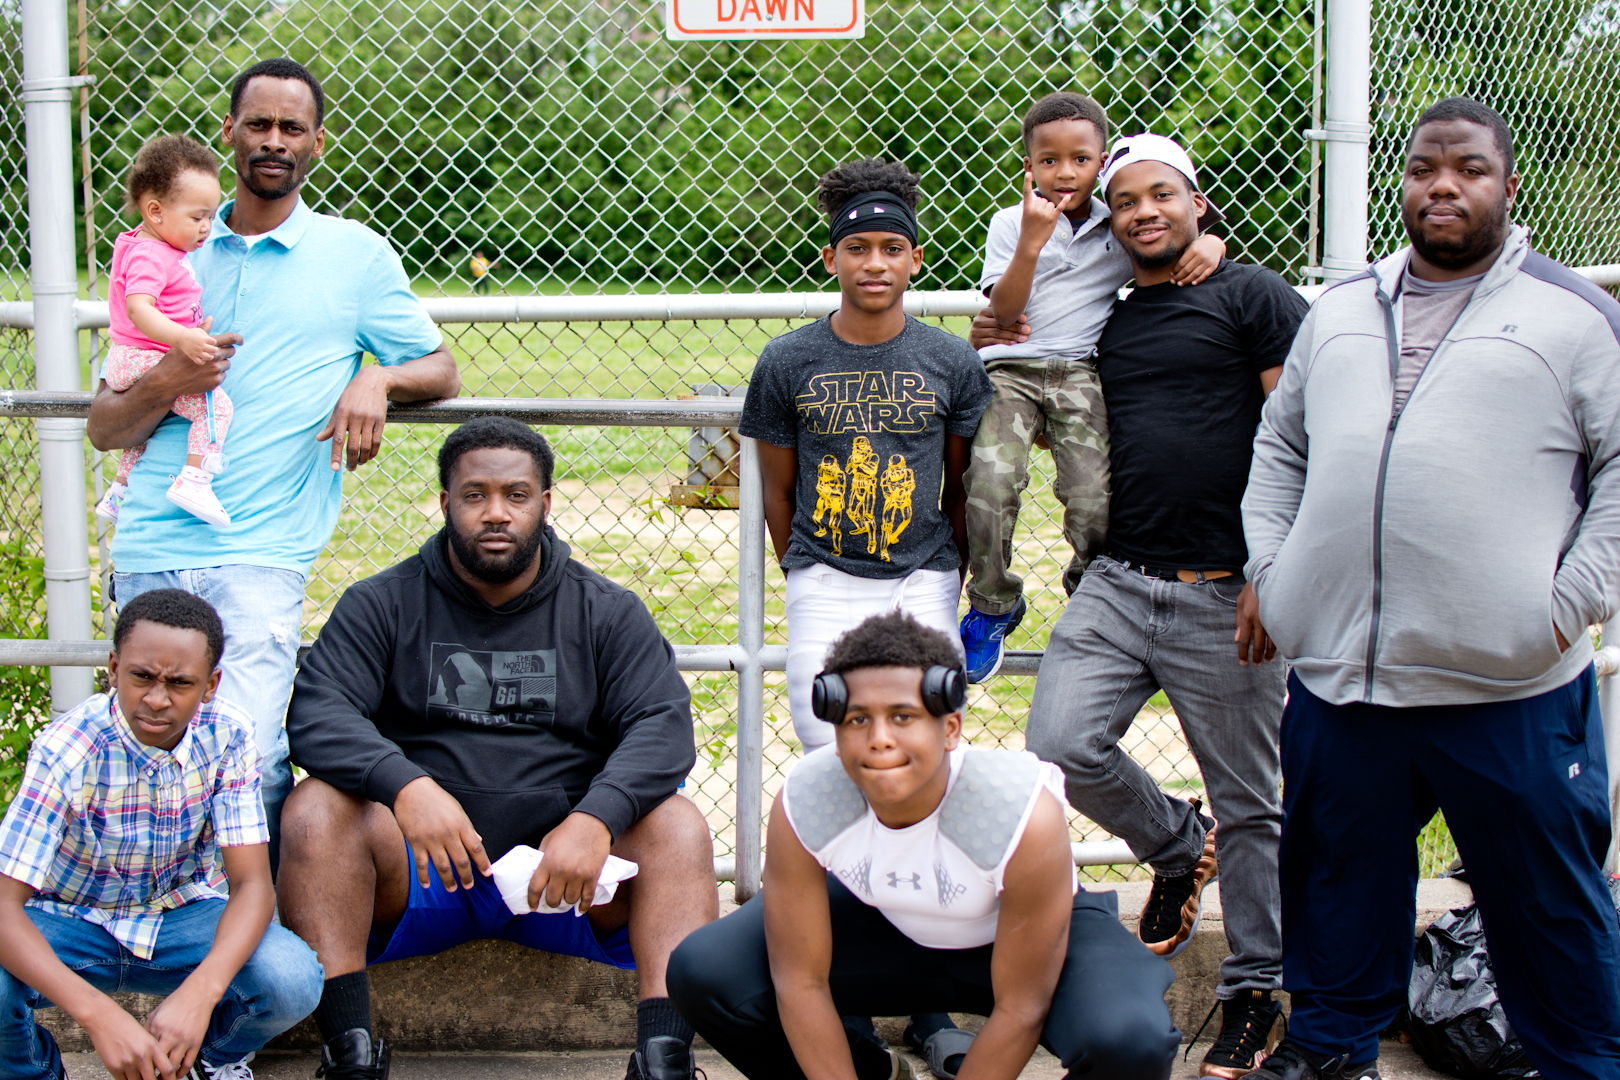 """""""We pretty much coach for old town gators, which is a youth football league established in 1978 in East Baltimore. We call this the swamp. Our season starts on August 1st but it's the spring season now."""""""